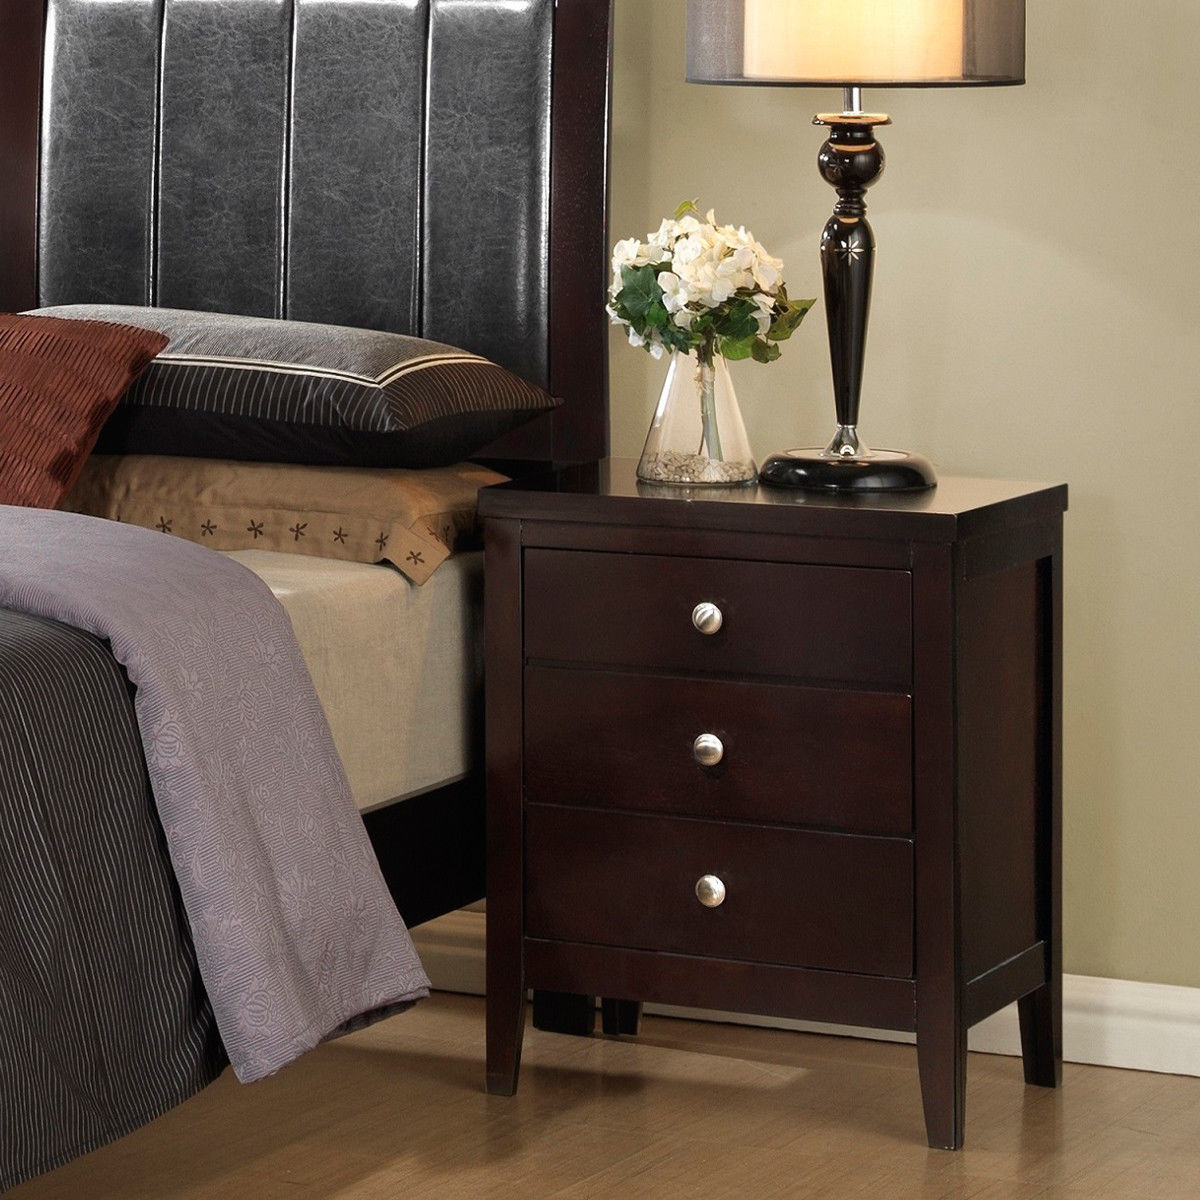 Costway 3 Drawers Nightstand End Bed Sofa Side Table Storage Bedroom Furniture New 0